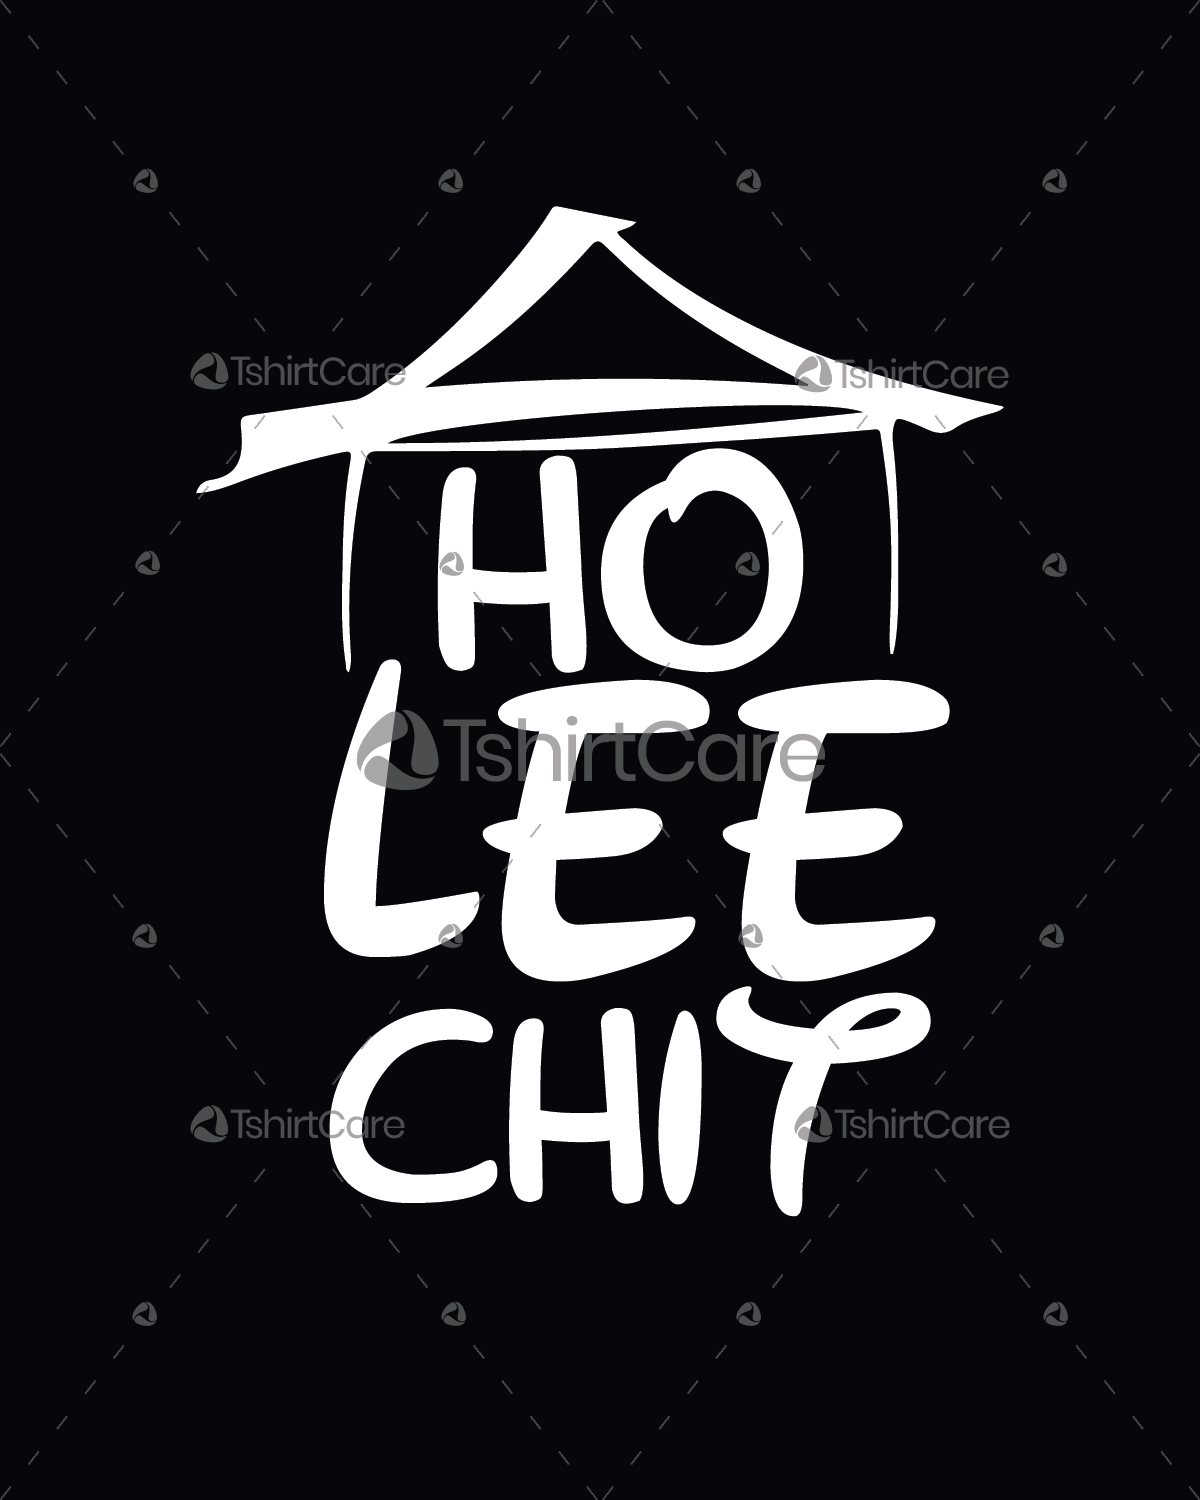 7cd04d479 Ho lee chit T Shirt Design Holy Shit Humor Funny Graphic T-Shirts for Adult  Men's & Women's - TshirtCare